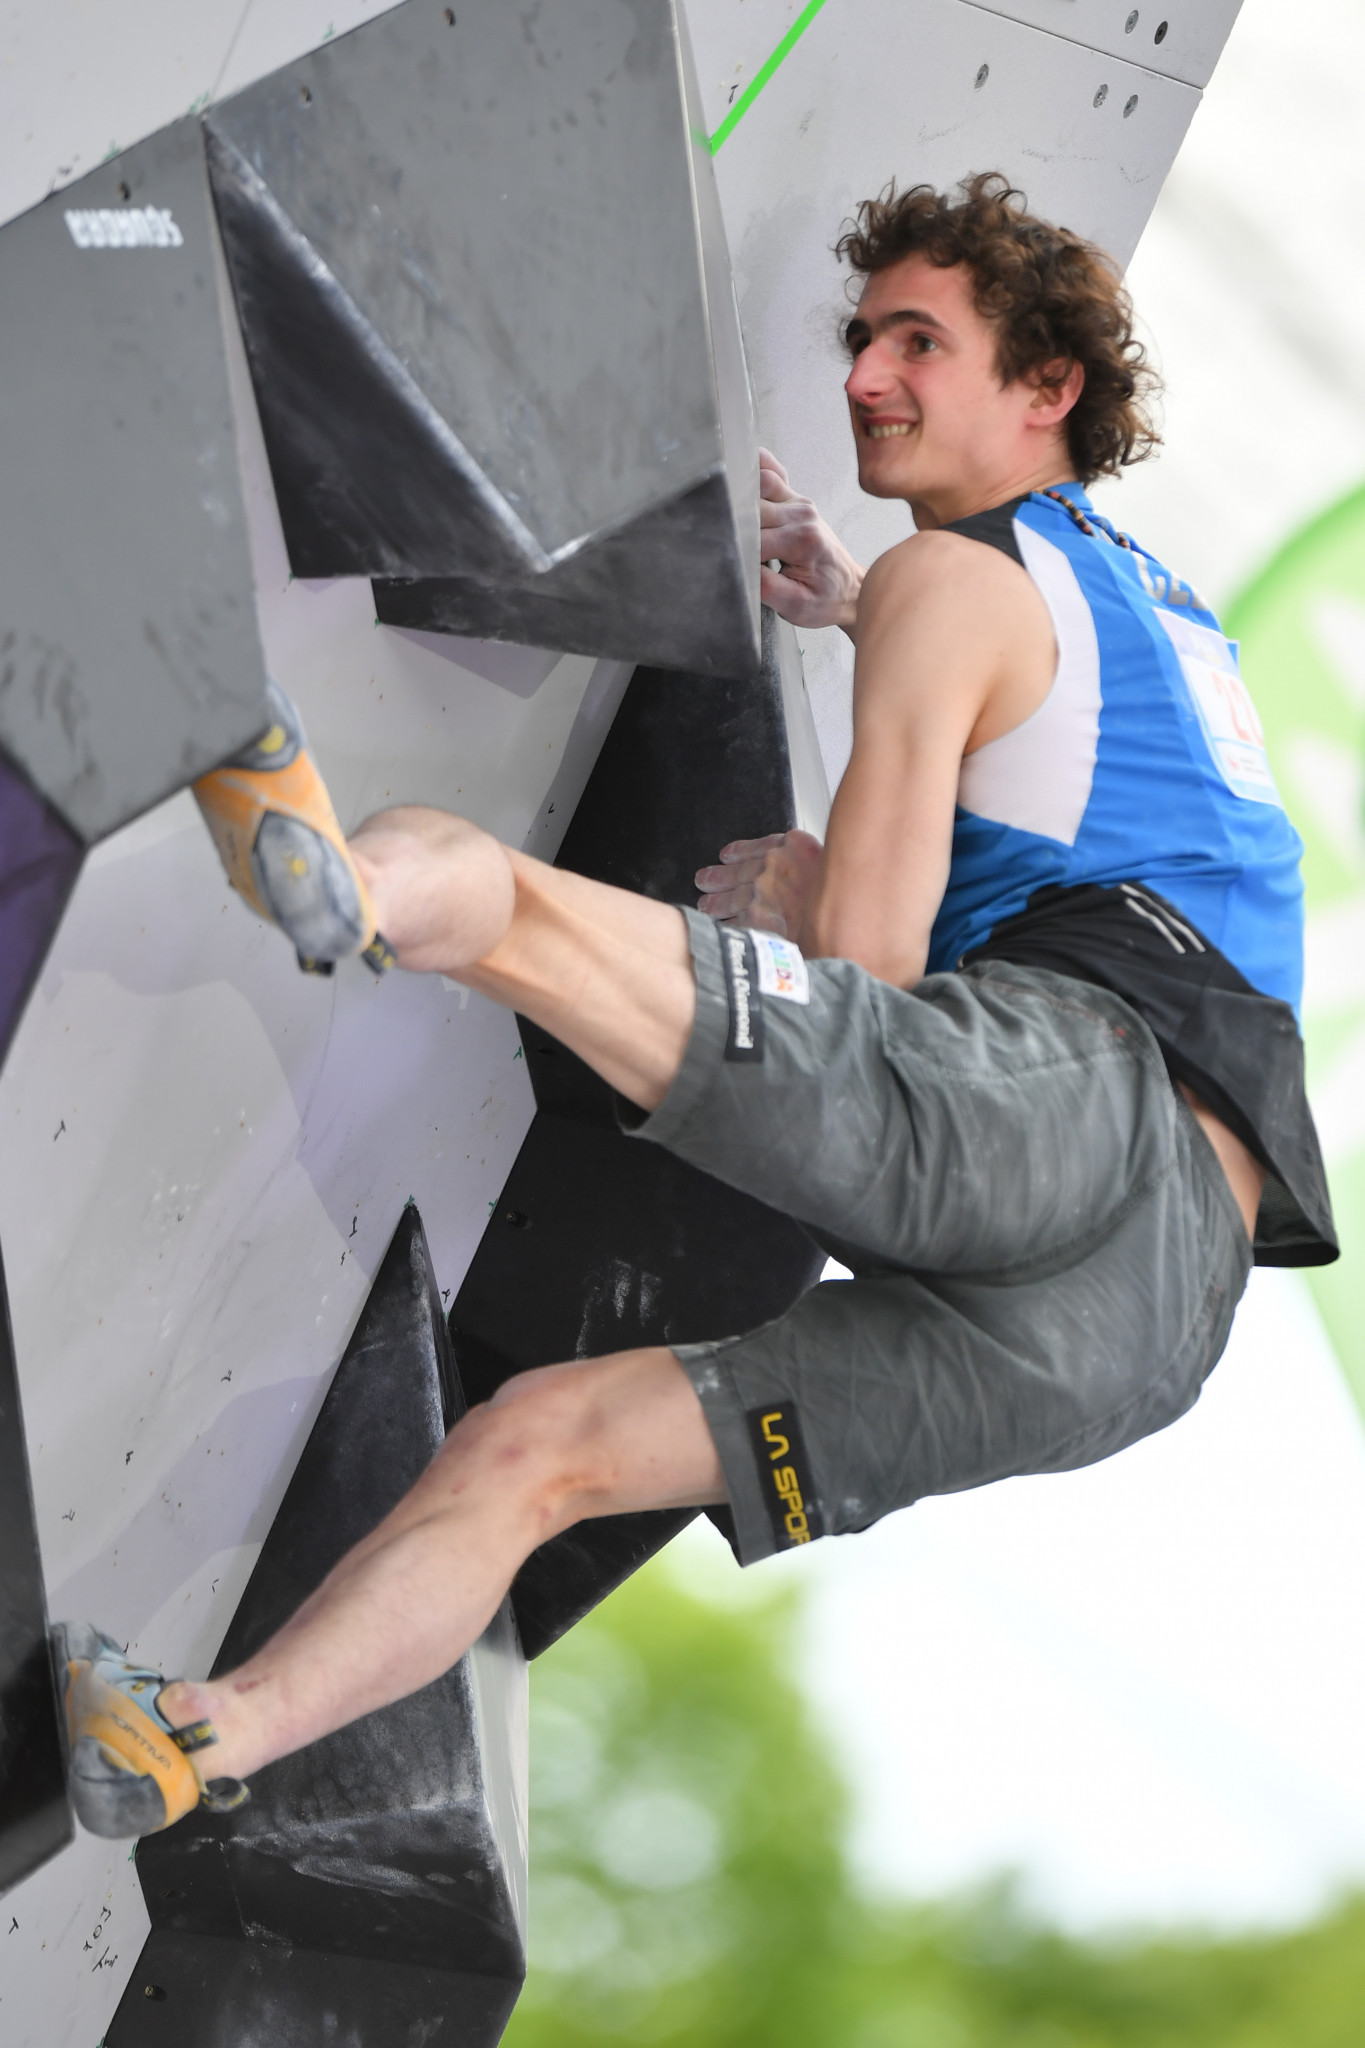 Adam Ondra qualified for the IFSC Bouldering World Cup semi-finals in Colorado, United States in second place ©Getty Images